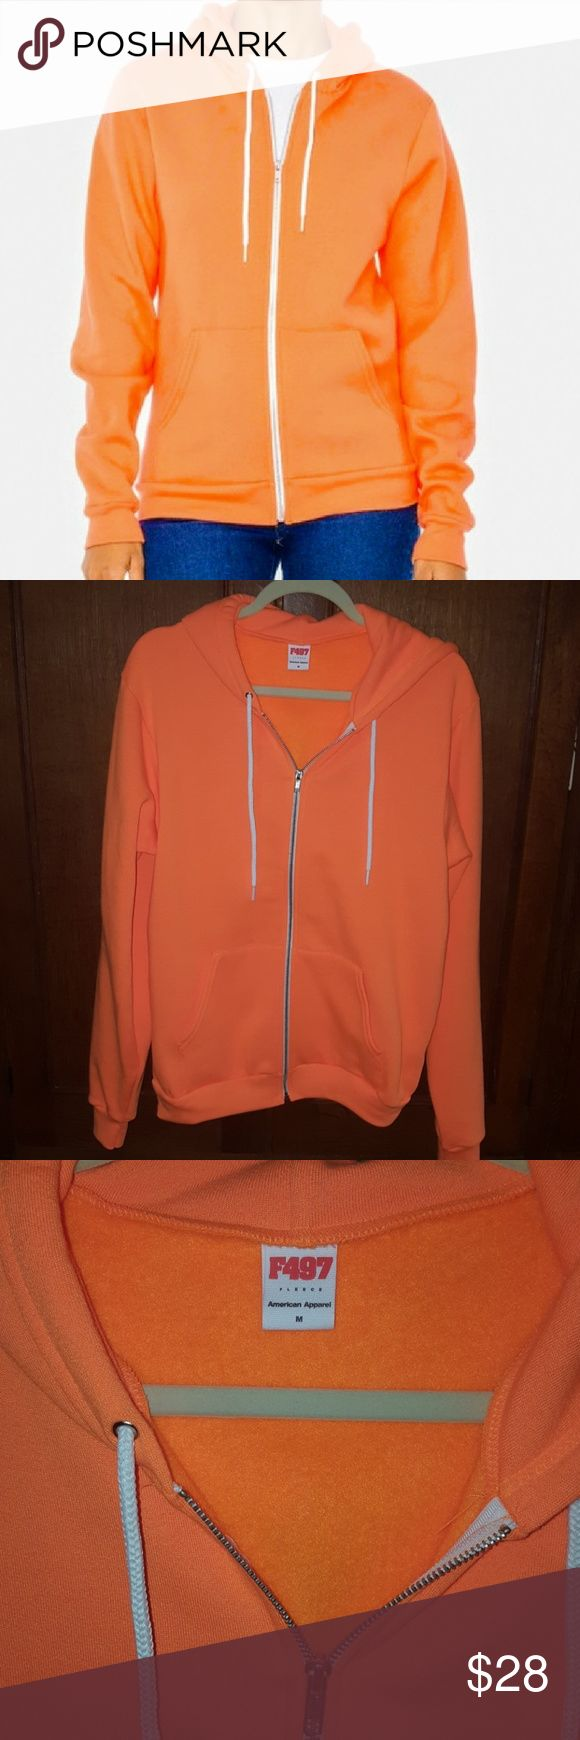 """NWOT American Apparel Unisex Neon Orange Hoodie Brand new. VERY neon orange. Super bright. Fleece inside. Unisex. Size M (large in women's). Tried on once it arrived from AA and didn't work for me.   Shoulder to shoulder approx 19 3/4"""", armpit to armpit 20"""", sleeve 28"""", length from shoulder 26.5"""" American Apparel Jackets & Coats"""